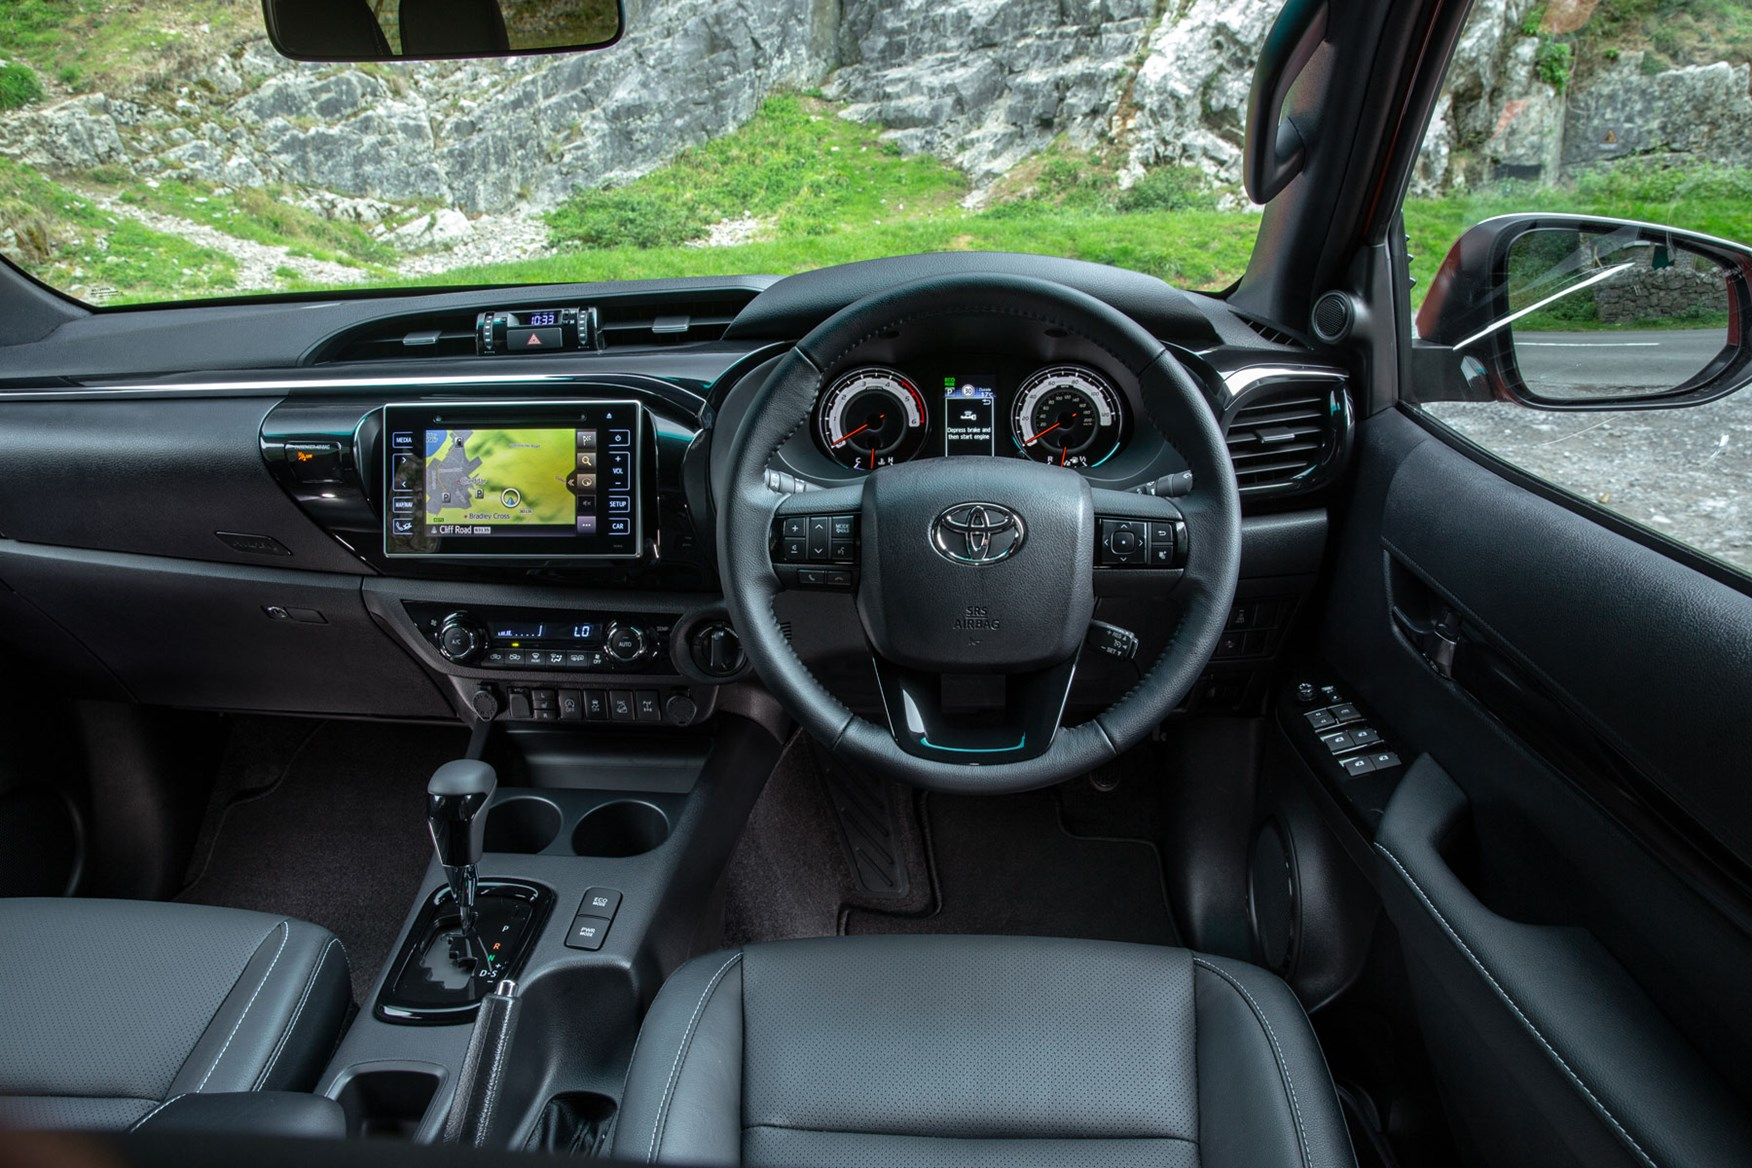 Toyota Hilux review - cab interior, steering wheel, dashboard